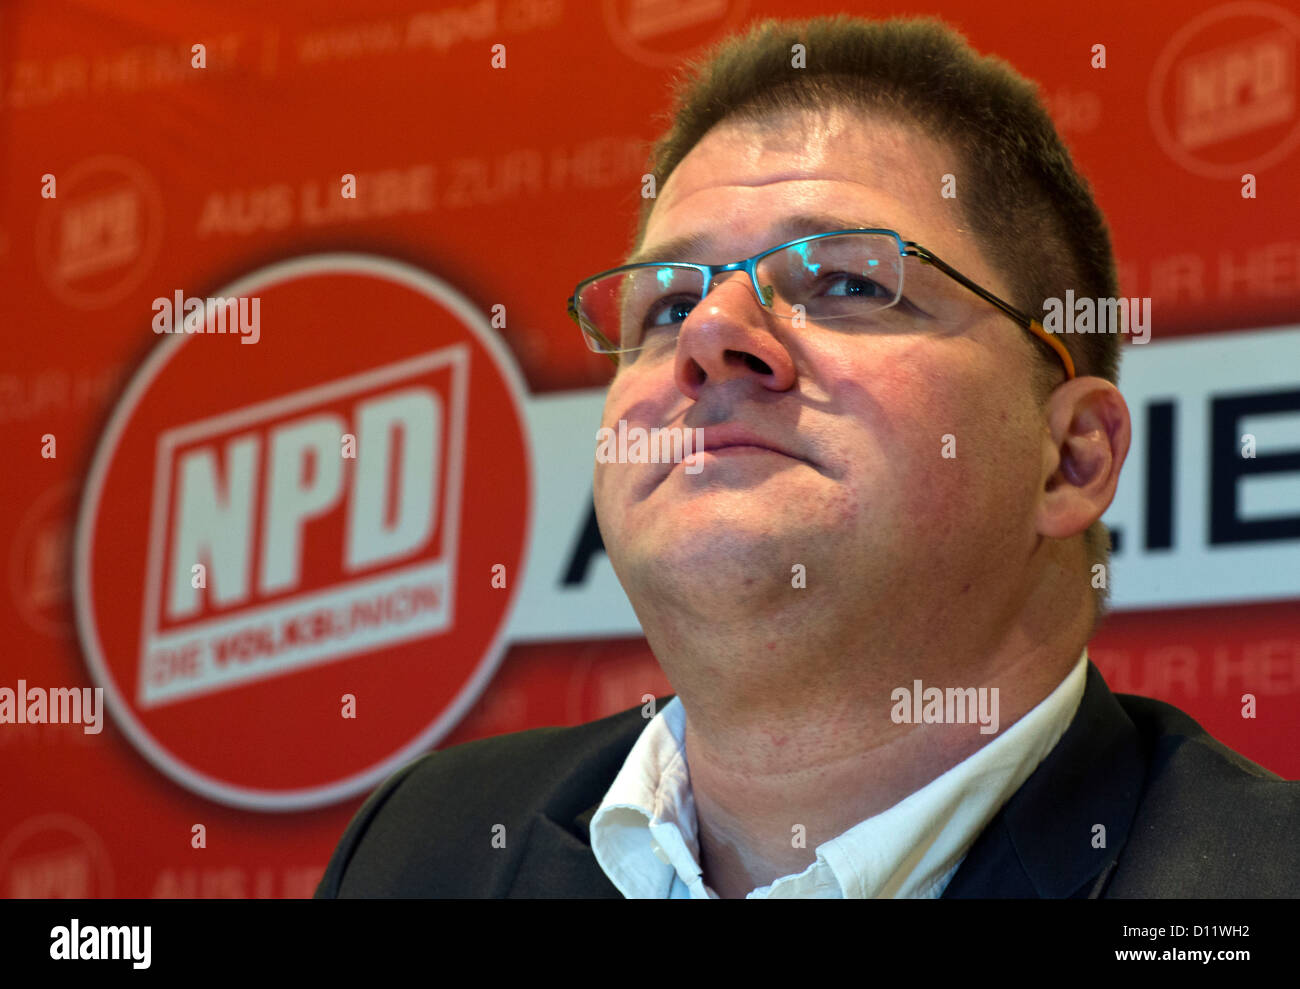 Chairman of the right-extremist National Democratic Party of Germany (NPD), Holger Apfel, speaks at a press conference - Stock Image